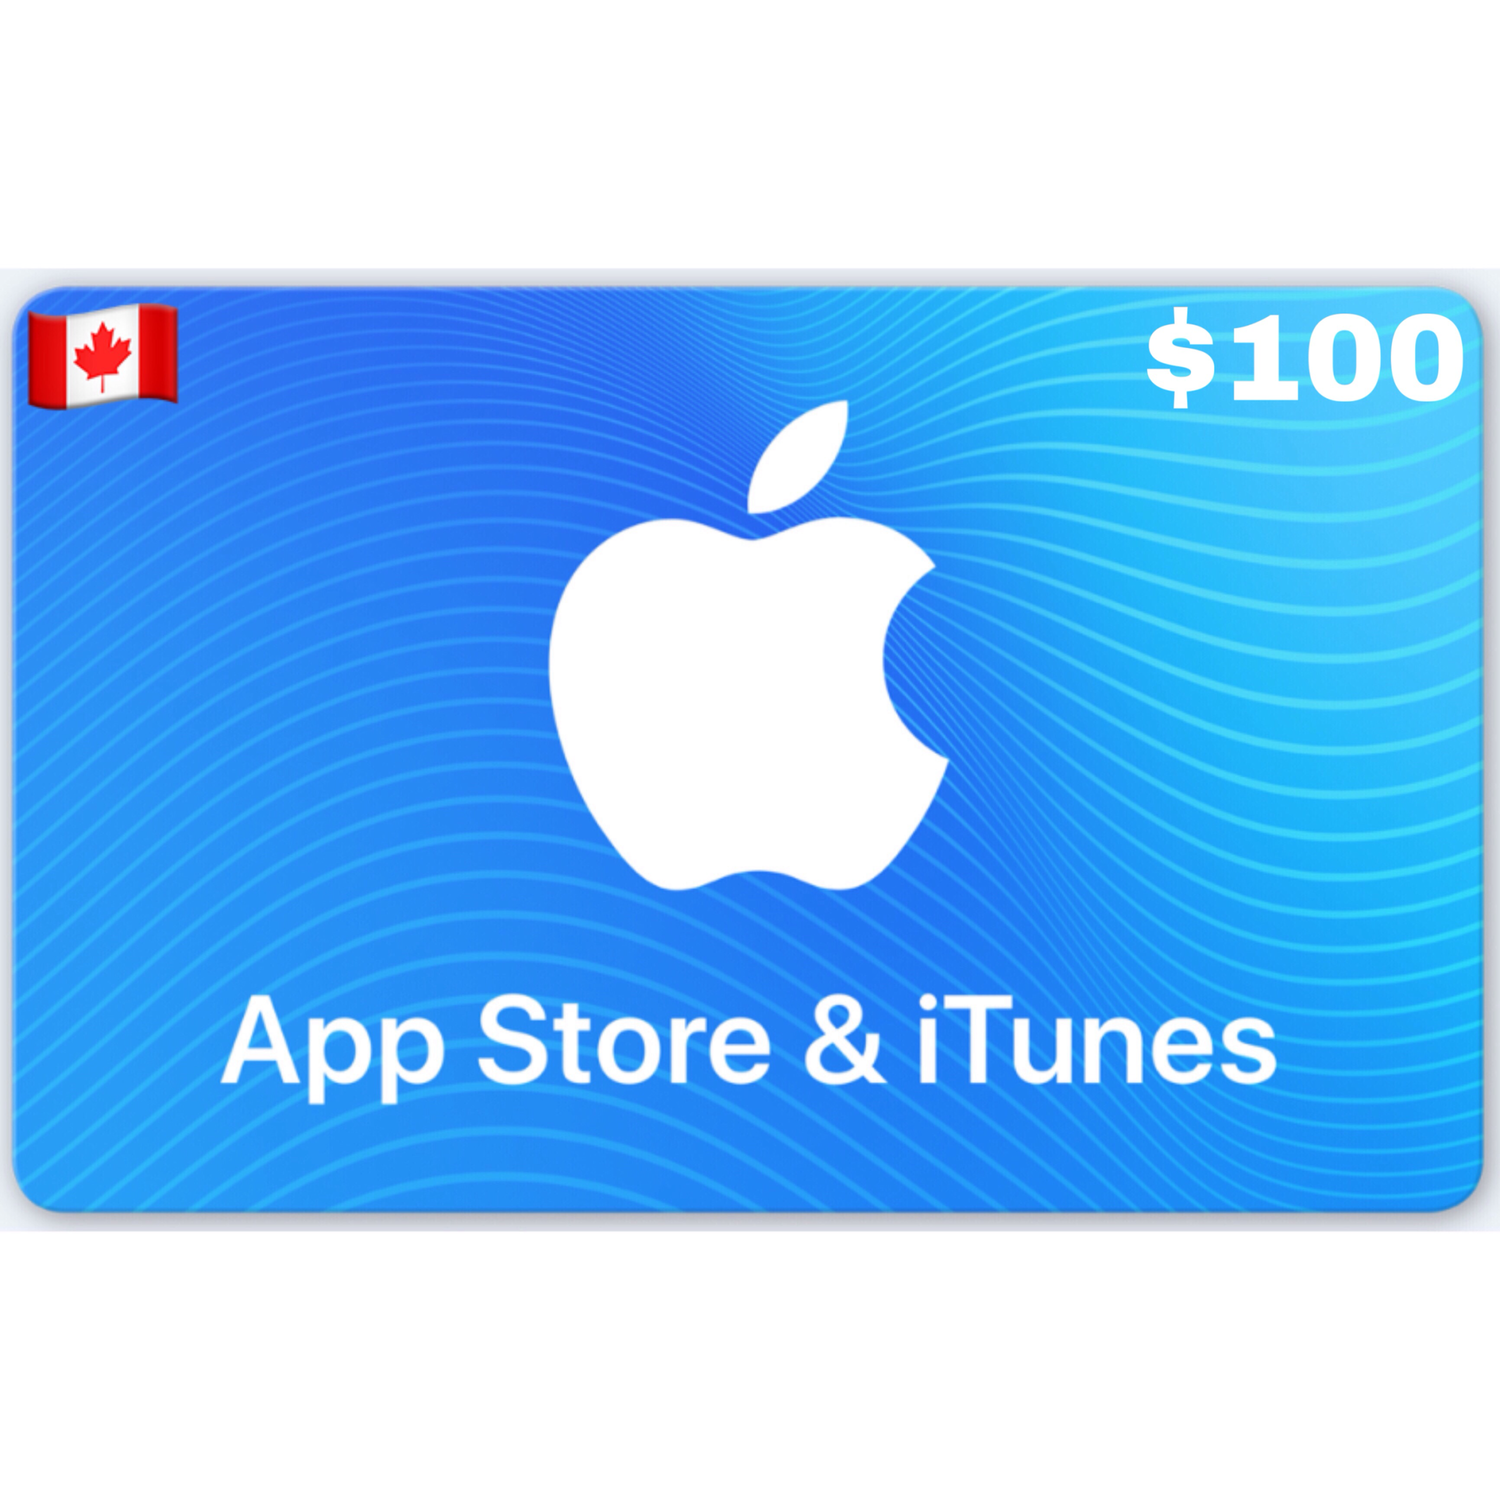 Apple App Store & iTunes Gift Card Canada $100